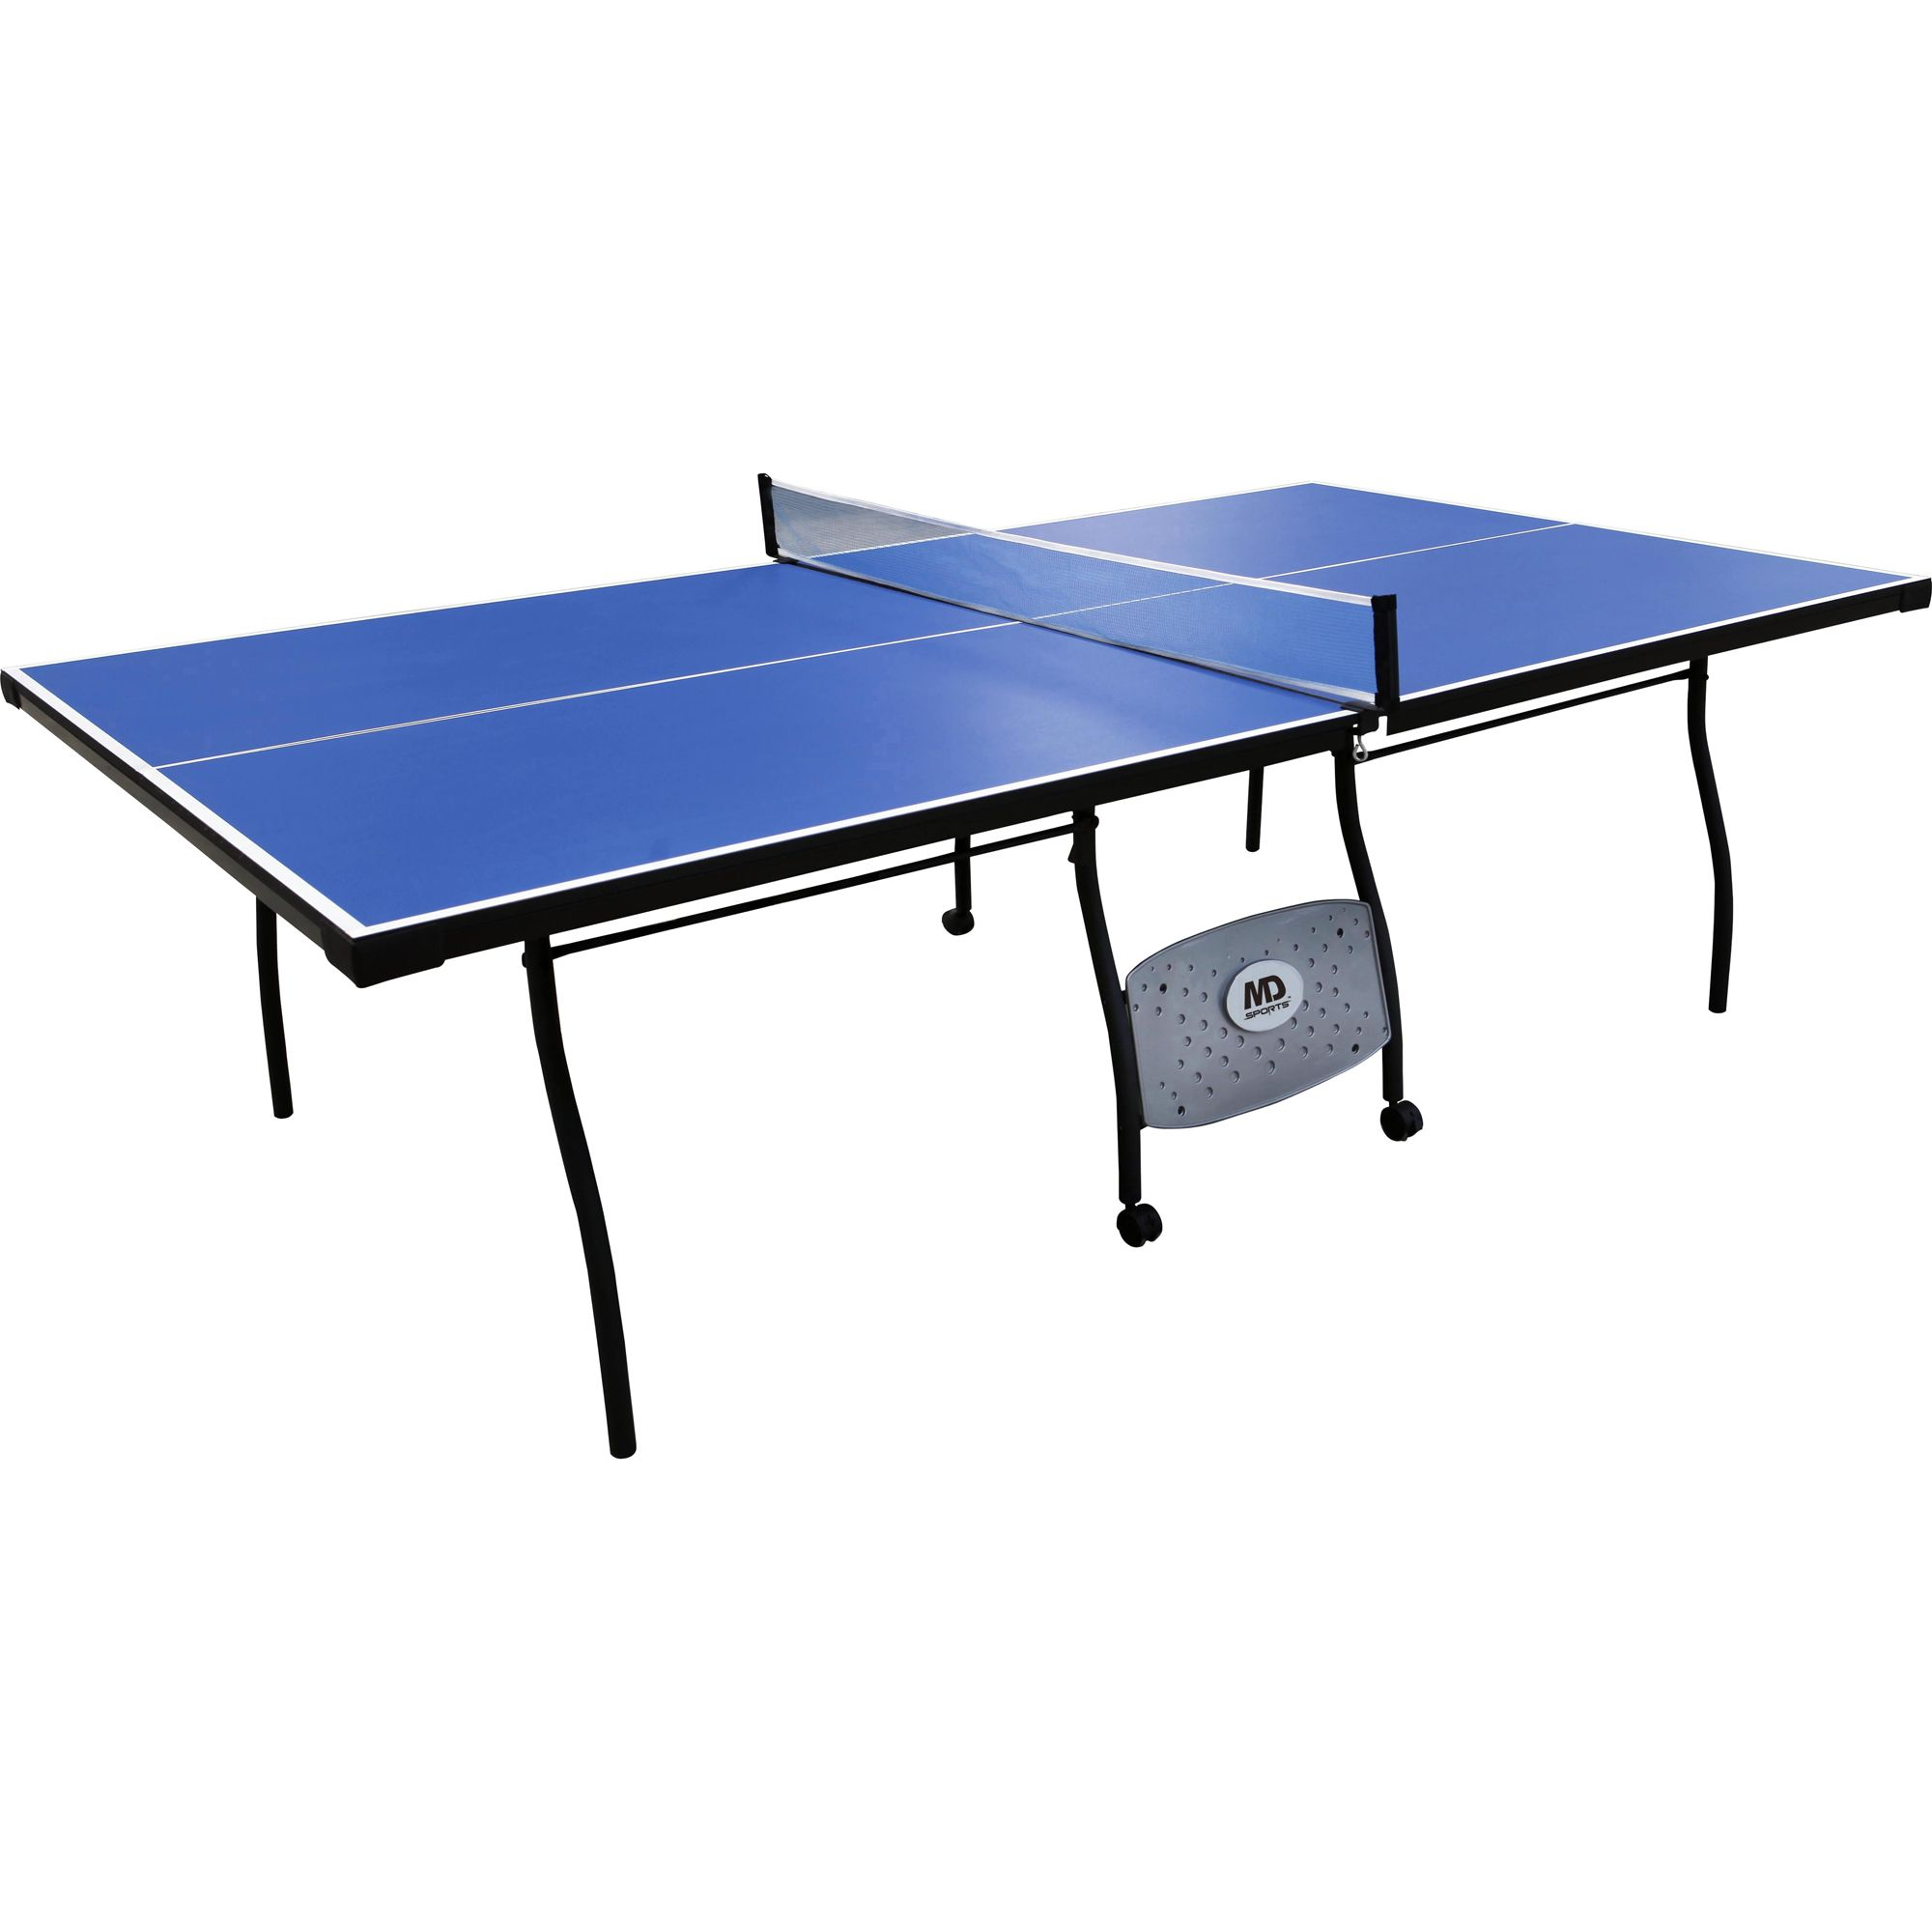 Awesome MD Sports Competition Series 4 Piece Table Tennis Table